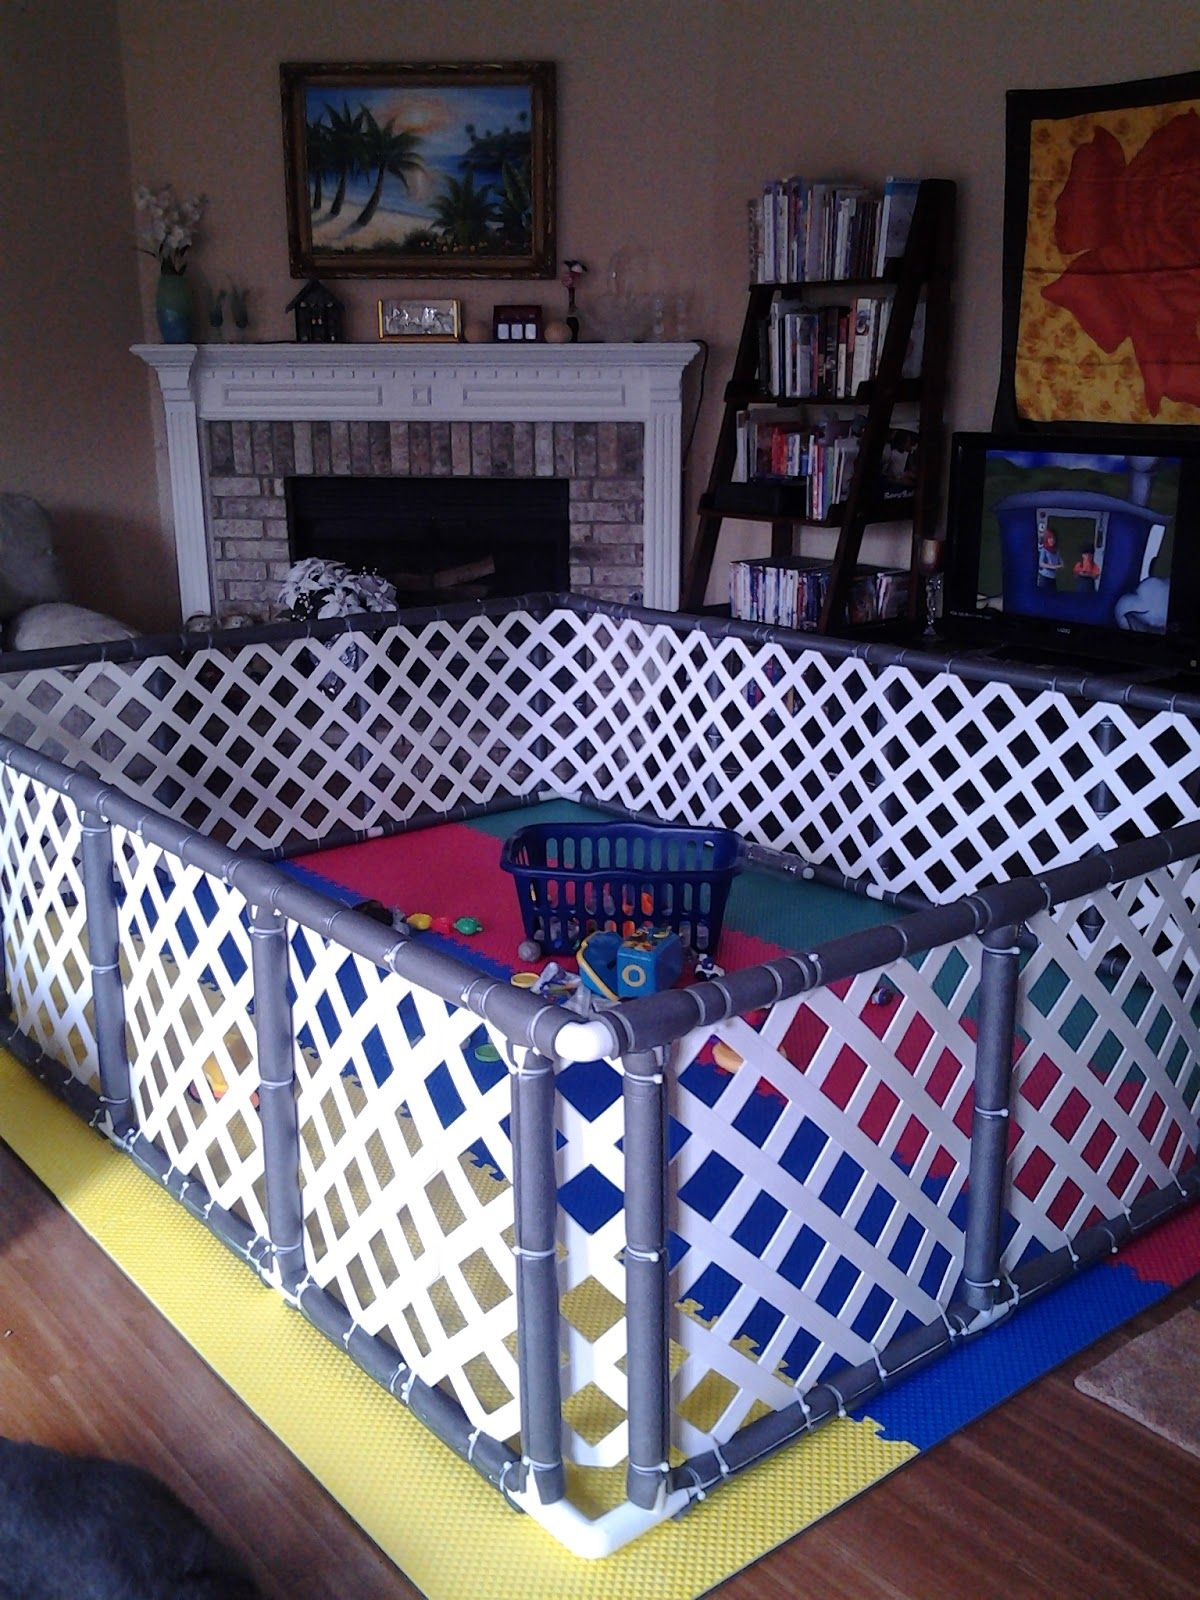 13 Diy Dog Gate Ideas: Our View: Making Of The DeLUXe PlayPen